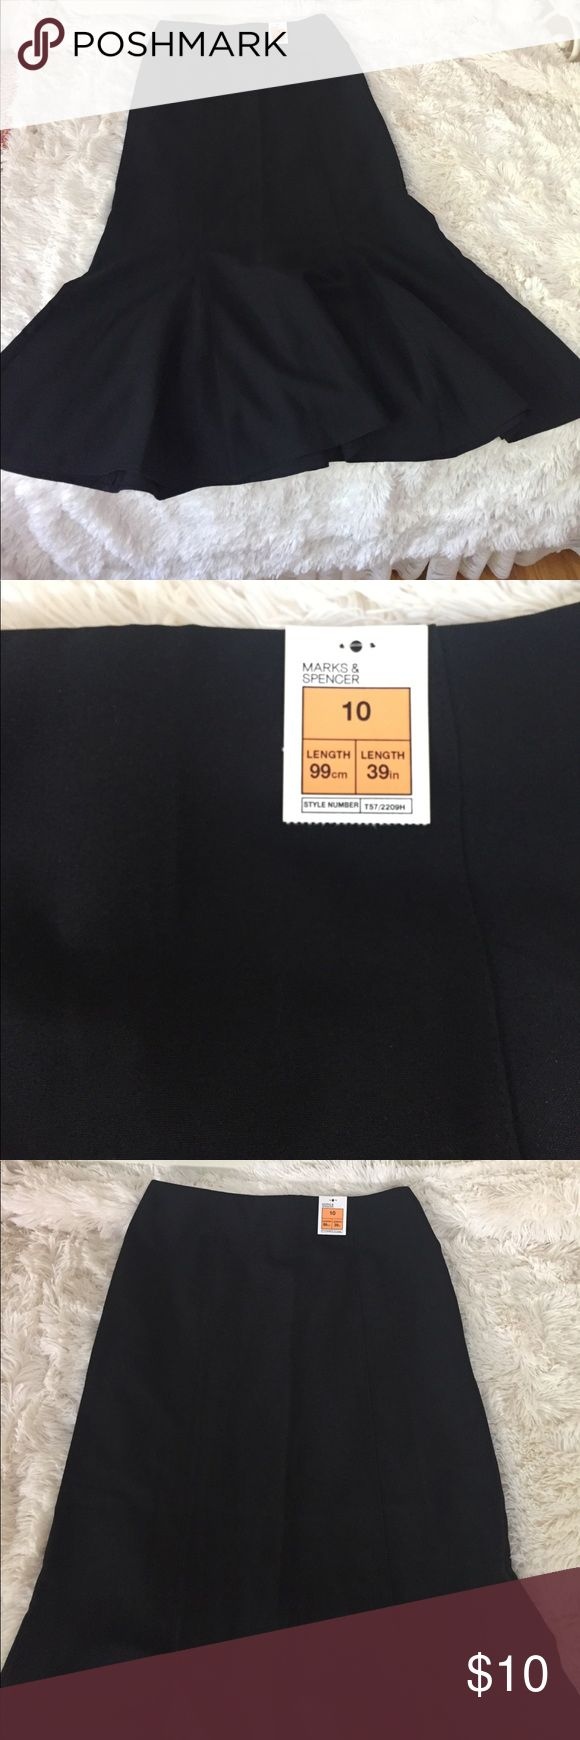 BRAND NEW Marks & Spencer Maxi Black skirt Brand new skirt. Size 10 European and 8 US. Marks & Spencer is a well known department store in Europe, similar to Nordstrom and Macy's in the US! Marks & Spencer Skirts Maxi